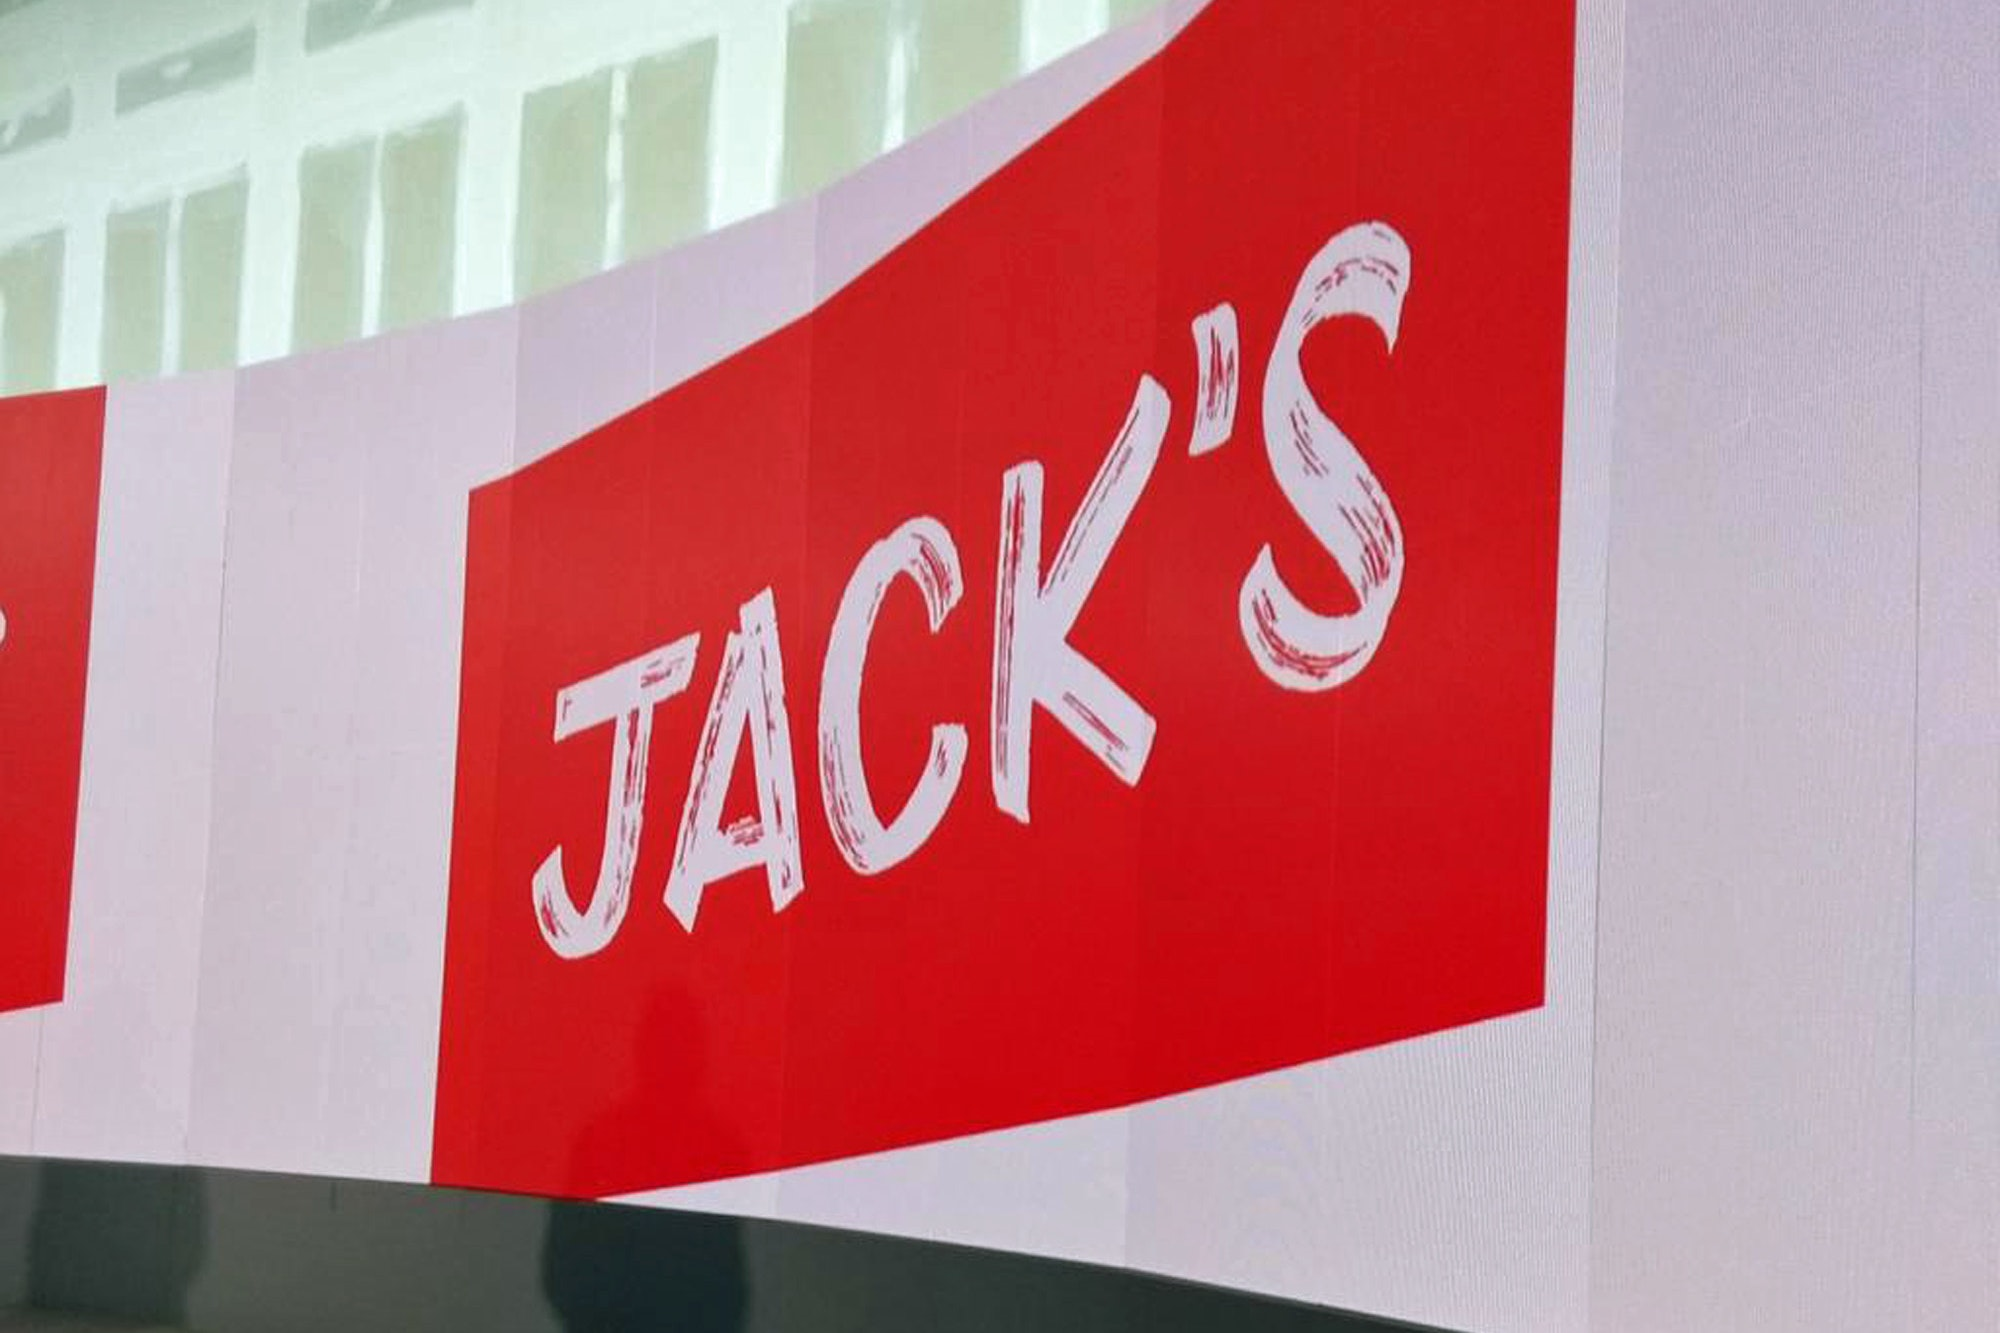 Tesco's new supermarket Jack's to open in Middlewich next week